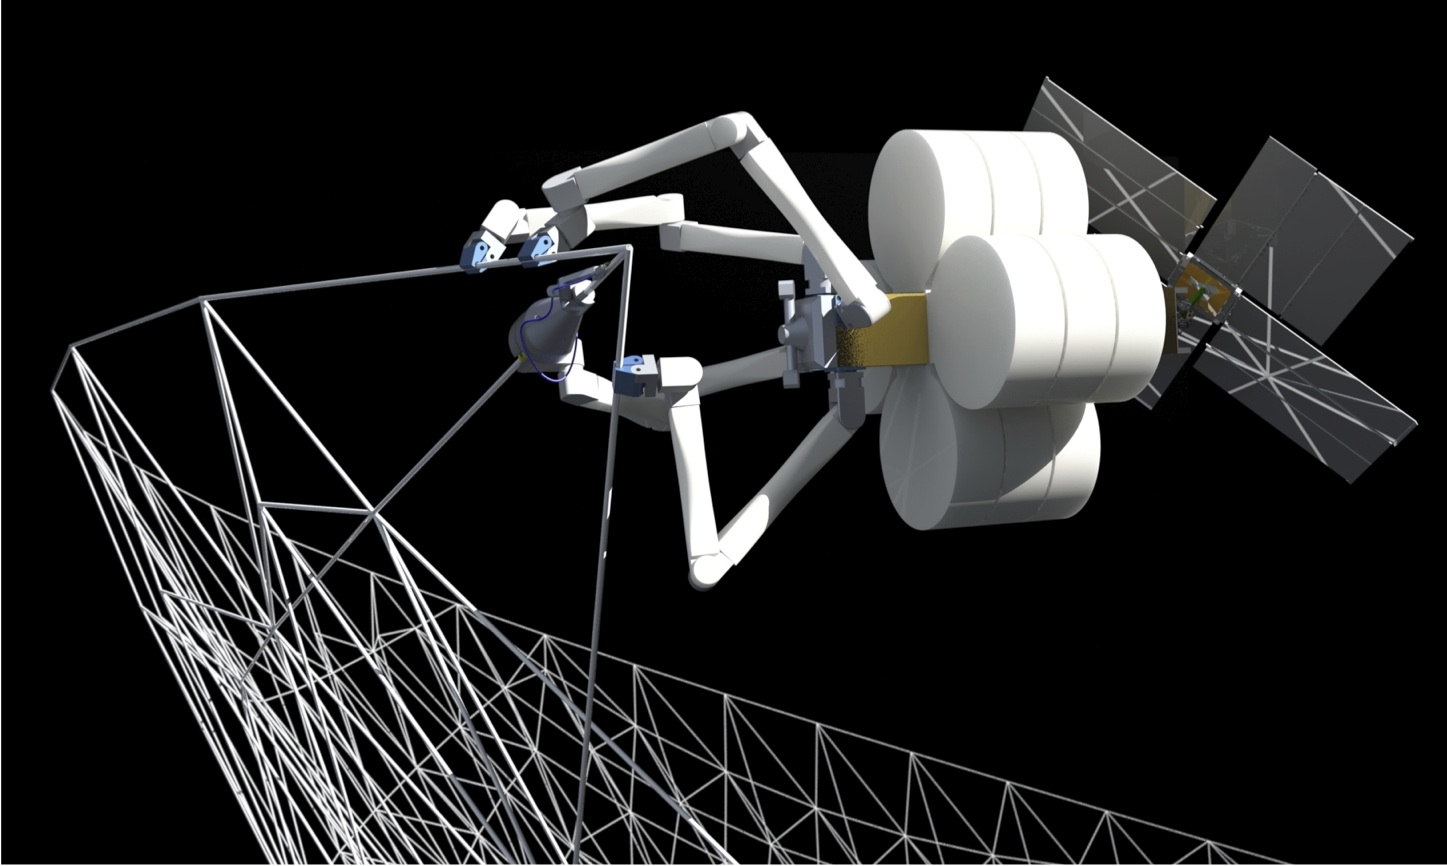 SpiderFab: Spider robots building structures in space